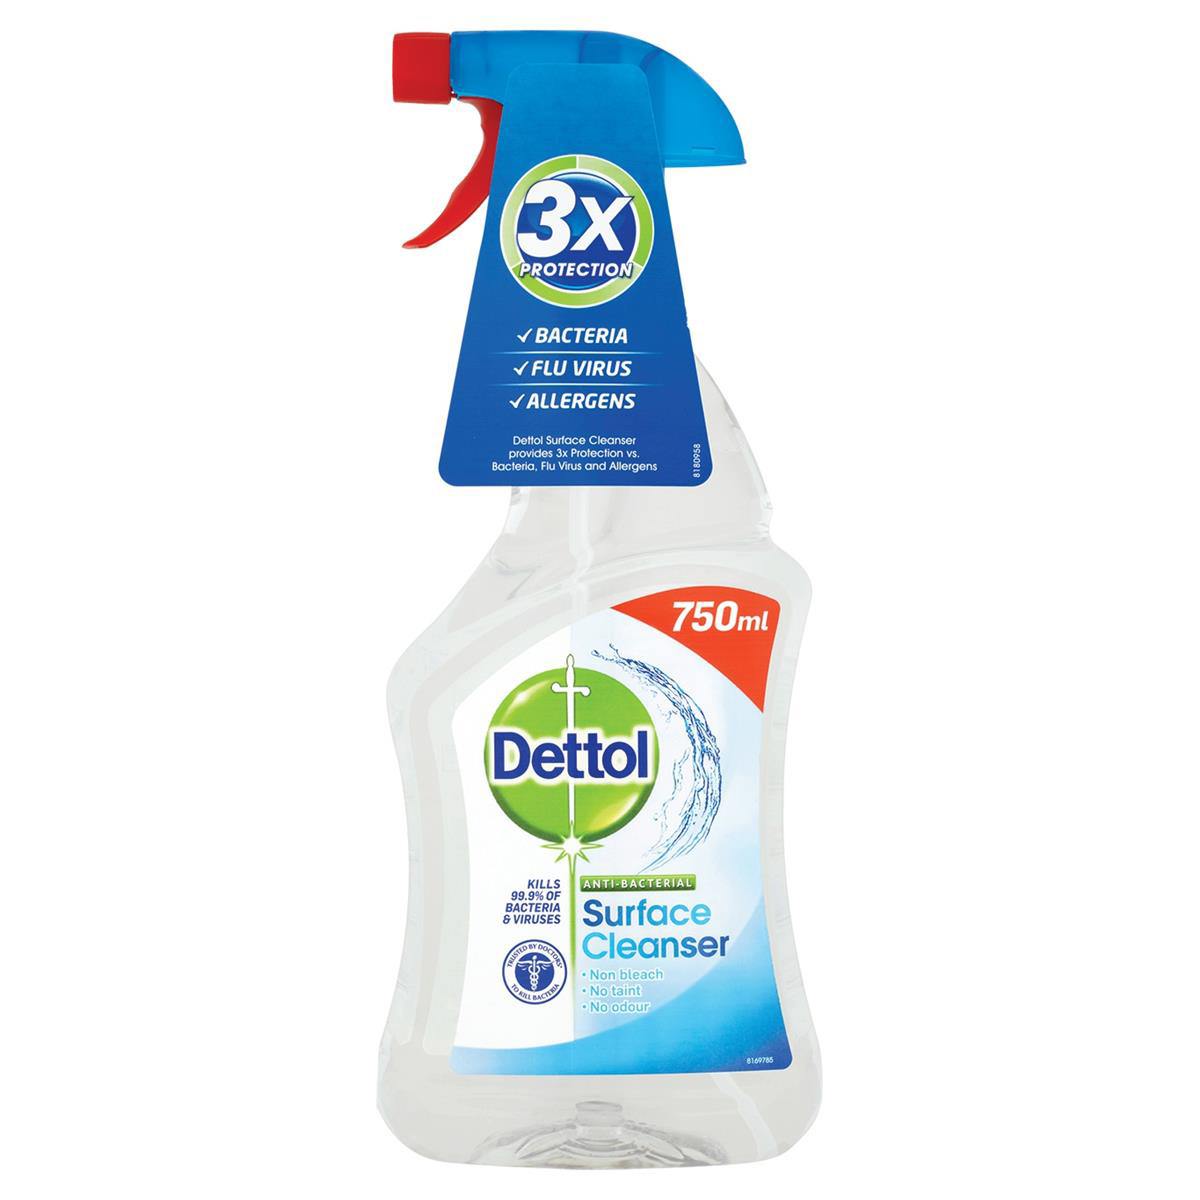 Image for Dettol Surface Cleanser Anti-Bacterial Spray 750ml Ref 14781